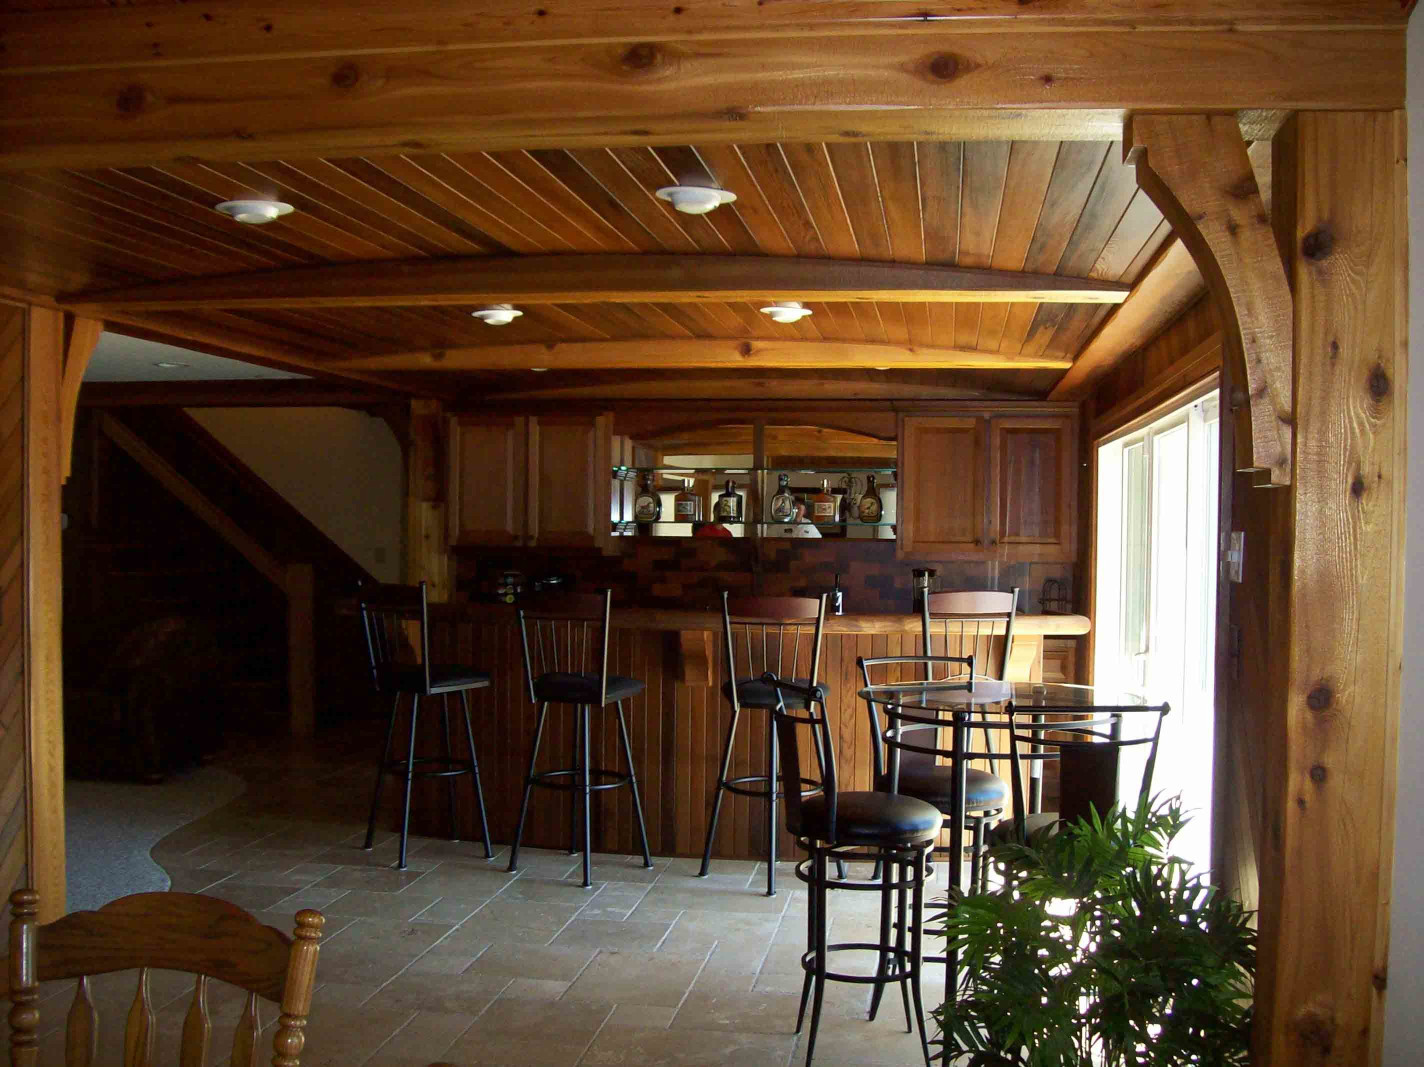 The custom wood beams, wood posts, wood braces, wood bar, and end grain backsplash, and cabinets in this home are completely unique.